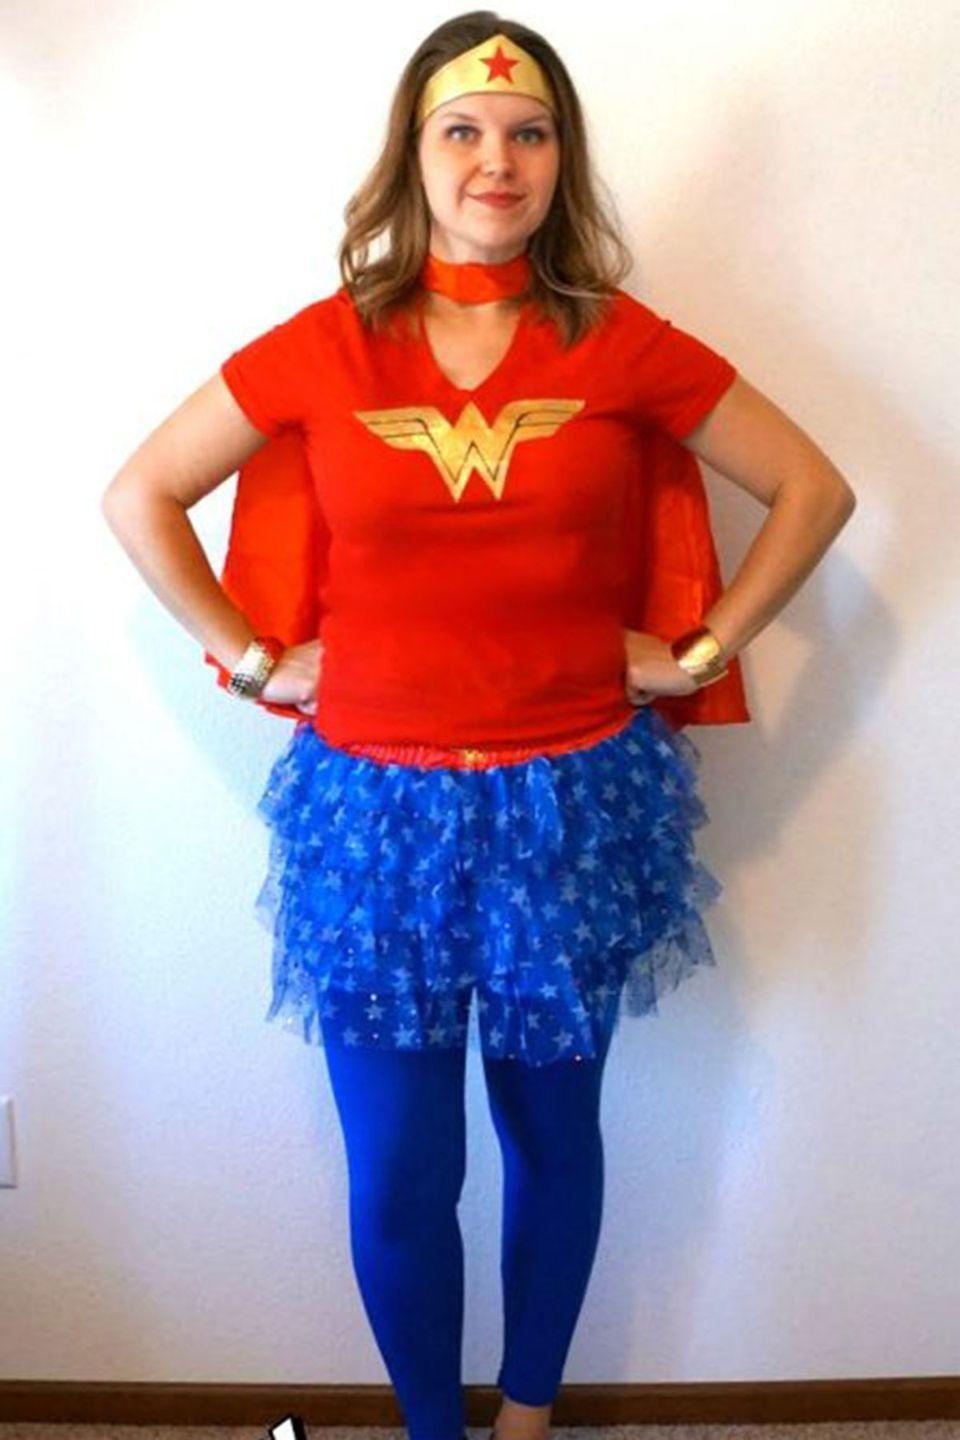 """<p>This super-easy DIY costume will definitely save the day. </p><p><strong>Get the tutorial at <a href=""""http://www.creativeramblingsblog.com/wonder-woman-inspired-costume/"""" rel=""""nofollow noopener"""" target=""""_blank"""" data-ylk=""""slk:Creative Ramblings"""" class=""""link rapid-noclick-resp"""">Creative Ramblings</a>.</strong></p><p><strong><a class=""""link rapid-noclick-resp"""" href=""""https://www.amazon.com/Rubies-Costume-Womens-Superheroes-Wonder/dp/B00UAD6HWC/?tag=syn-yahoo-20&ascsubtag=%5Bartid%7C10050.g.4571%5Bsrc%7Cyahoo-us"""" rel=""""nofollow noopener"""" target=""""_blank"""" data-ylk=""""slk:SHOP CAPE"""">SHOP CAPE</a></strong></p>"""